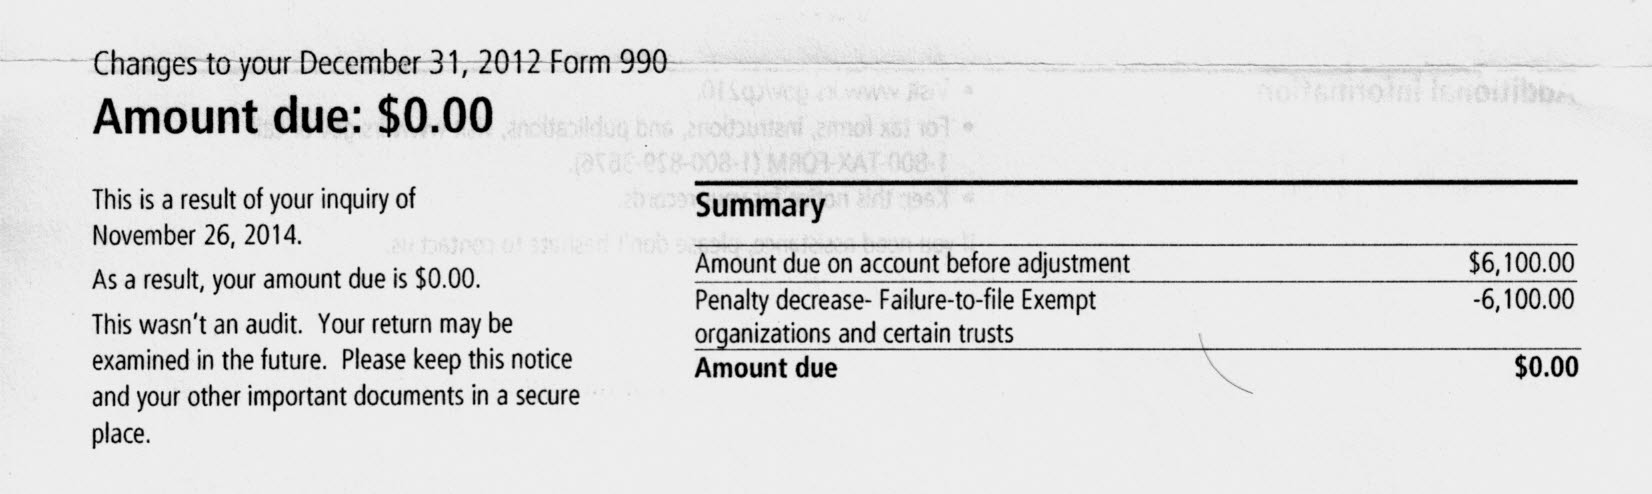 Form LateFiling Penalty Abatement Manual Example Letters - Irs letter template